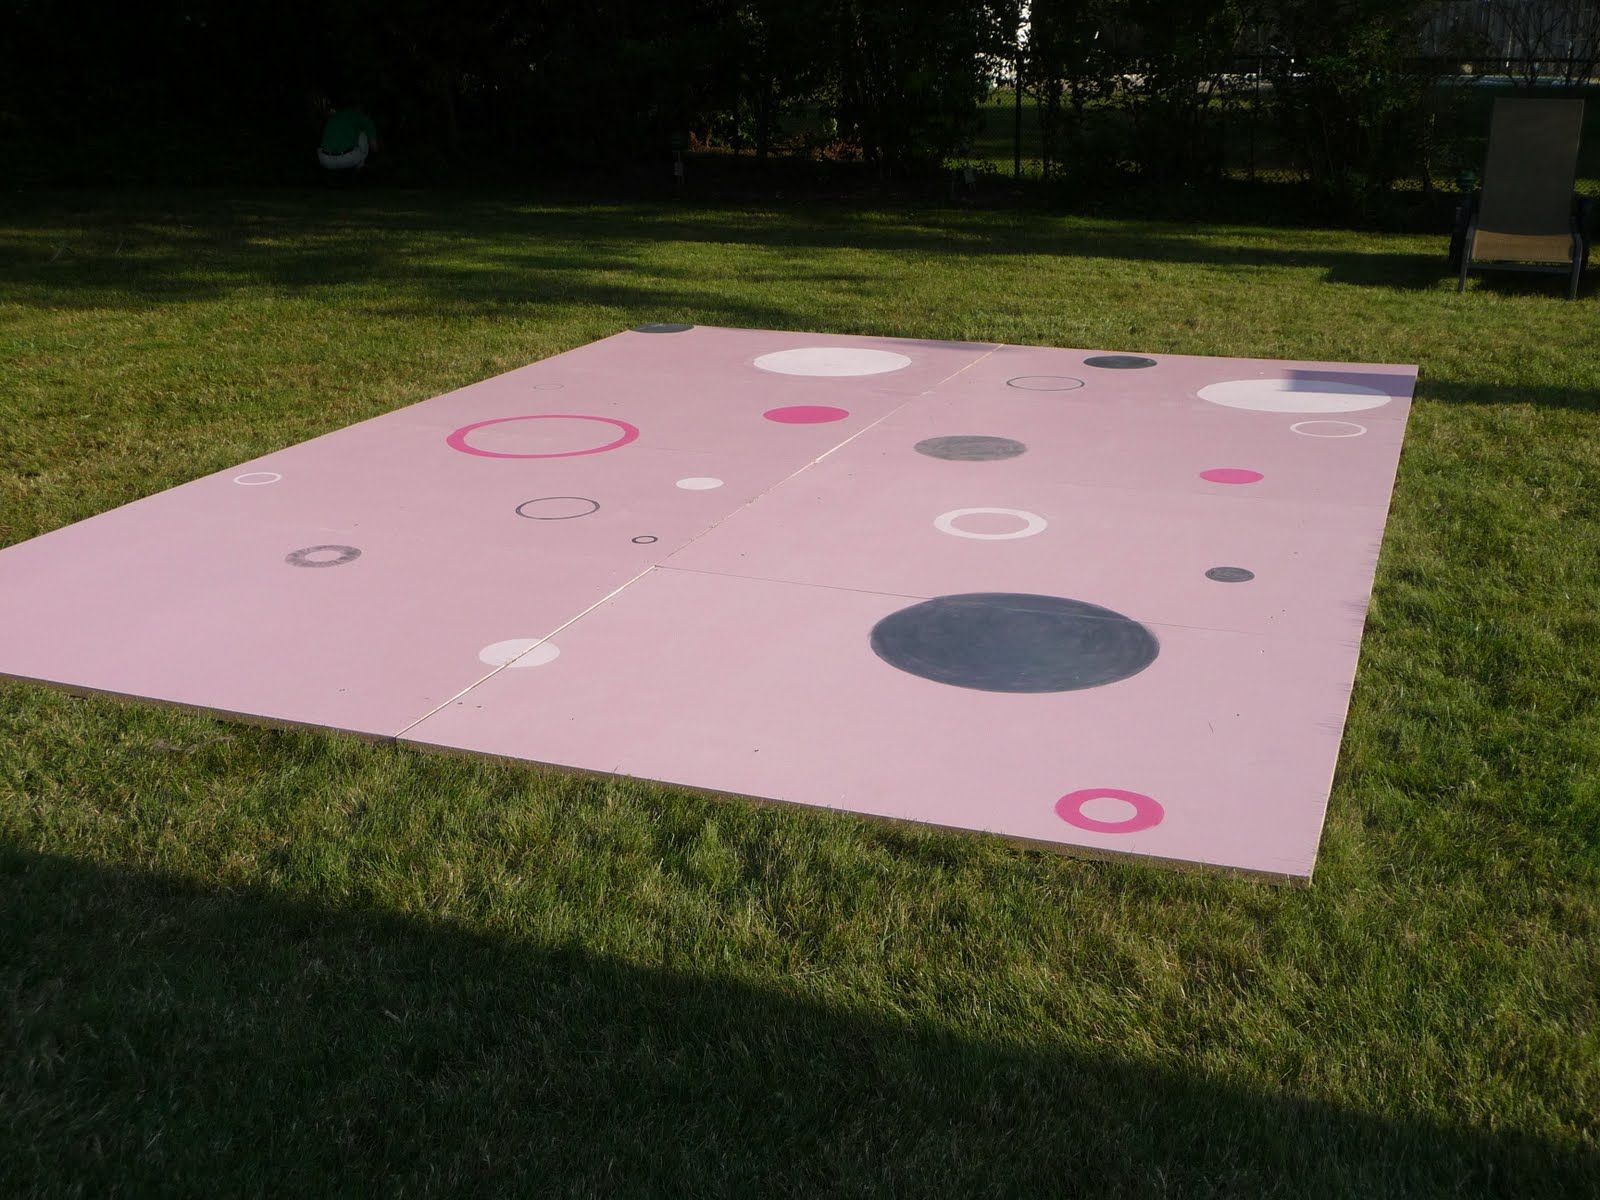 DIY Dance Floor For A Teen Party